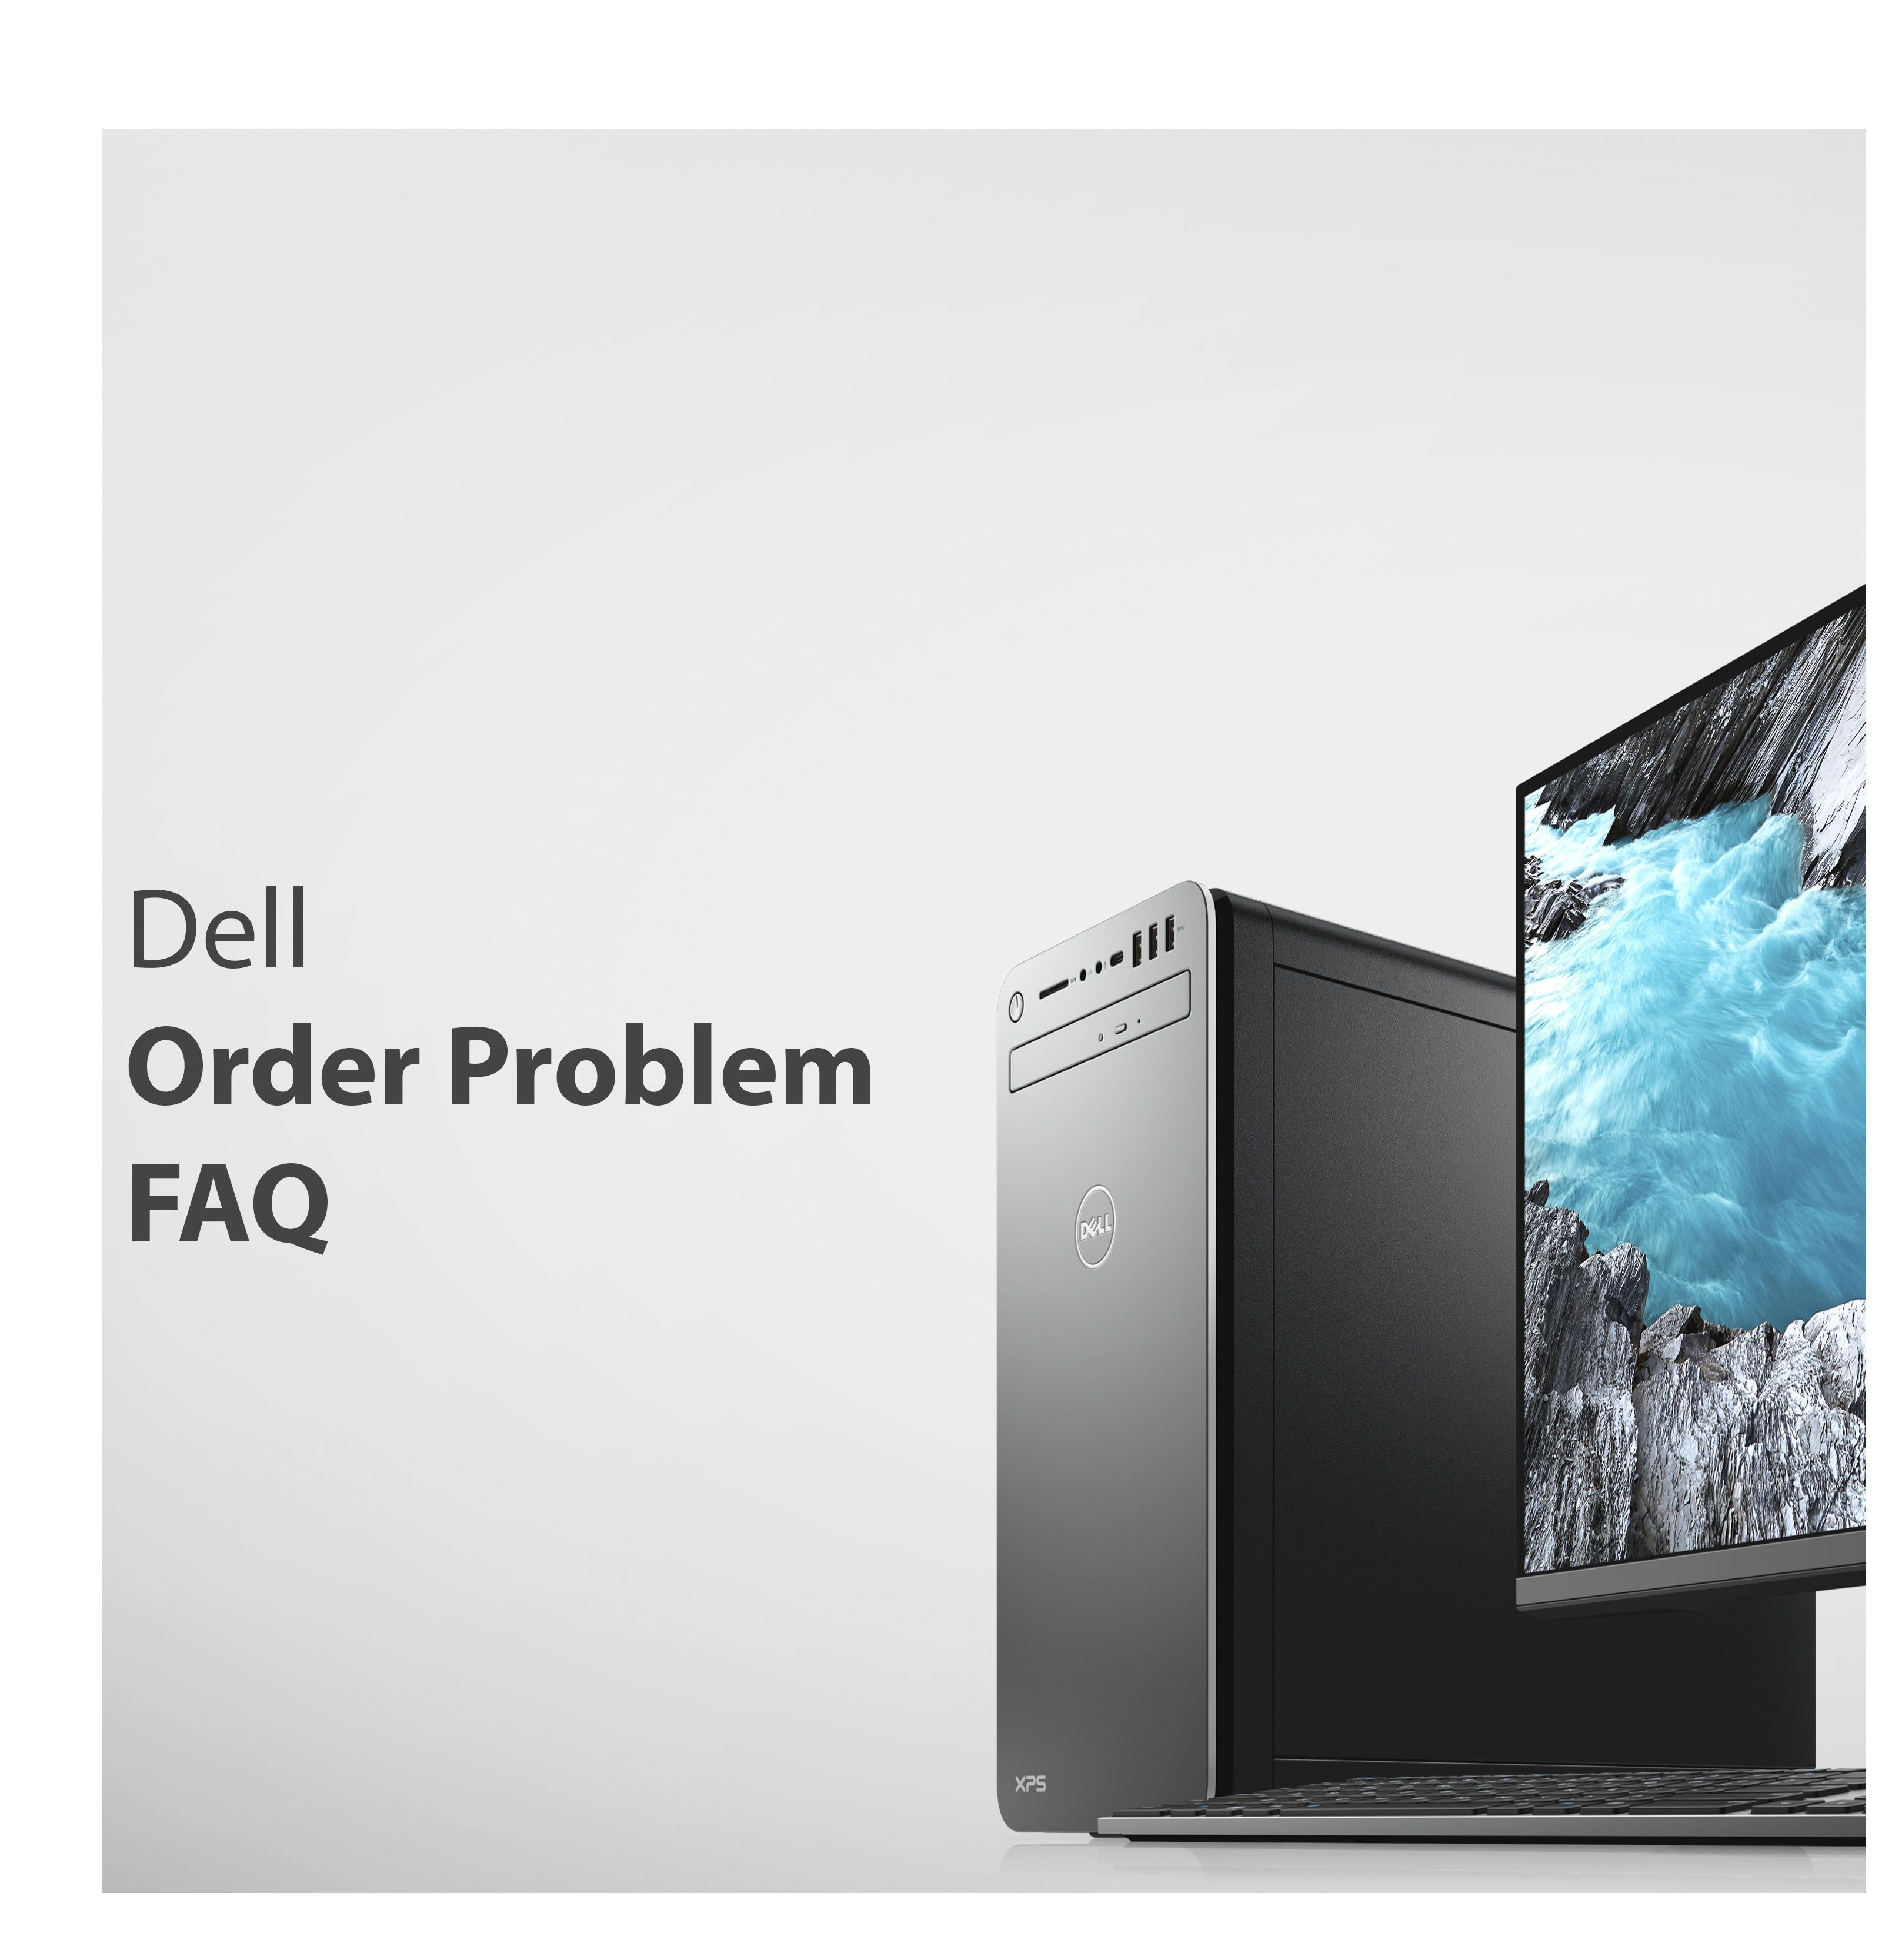 Are you having problems with your order from Dell? 🙋 We